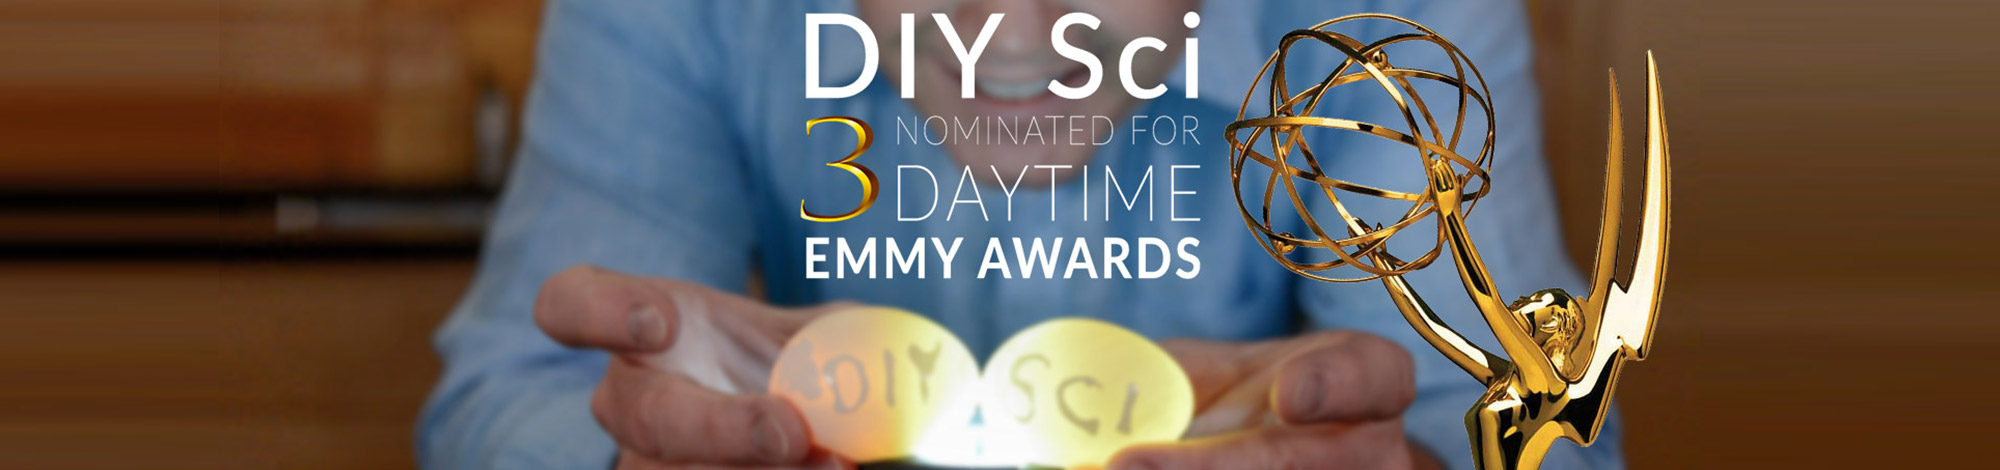 Steve Spangler's DIY Sci Emmy Nominated Series